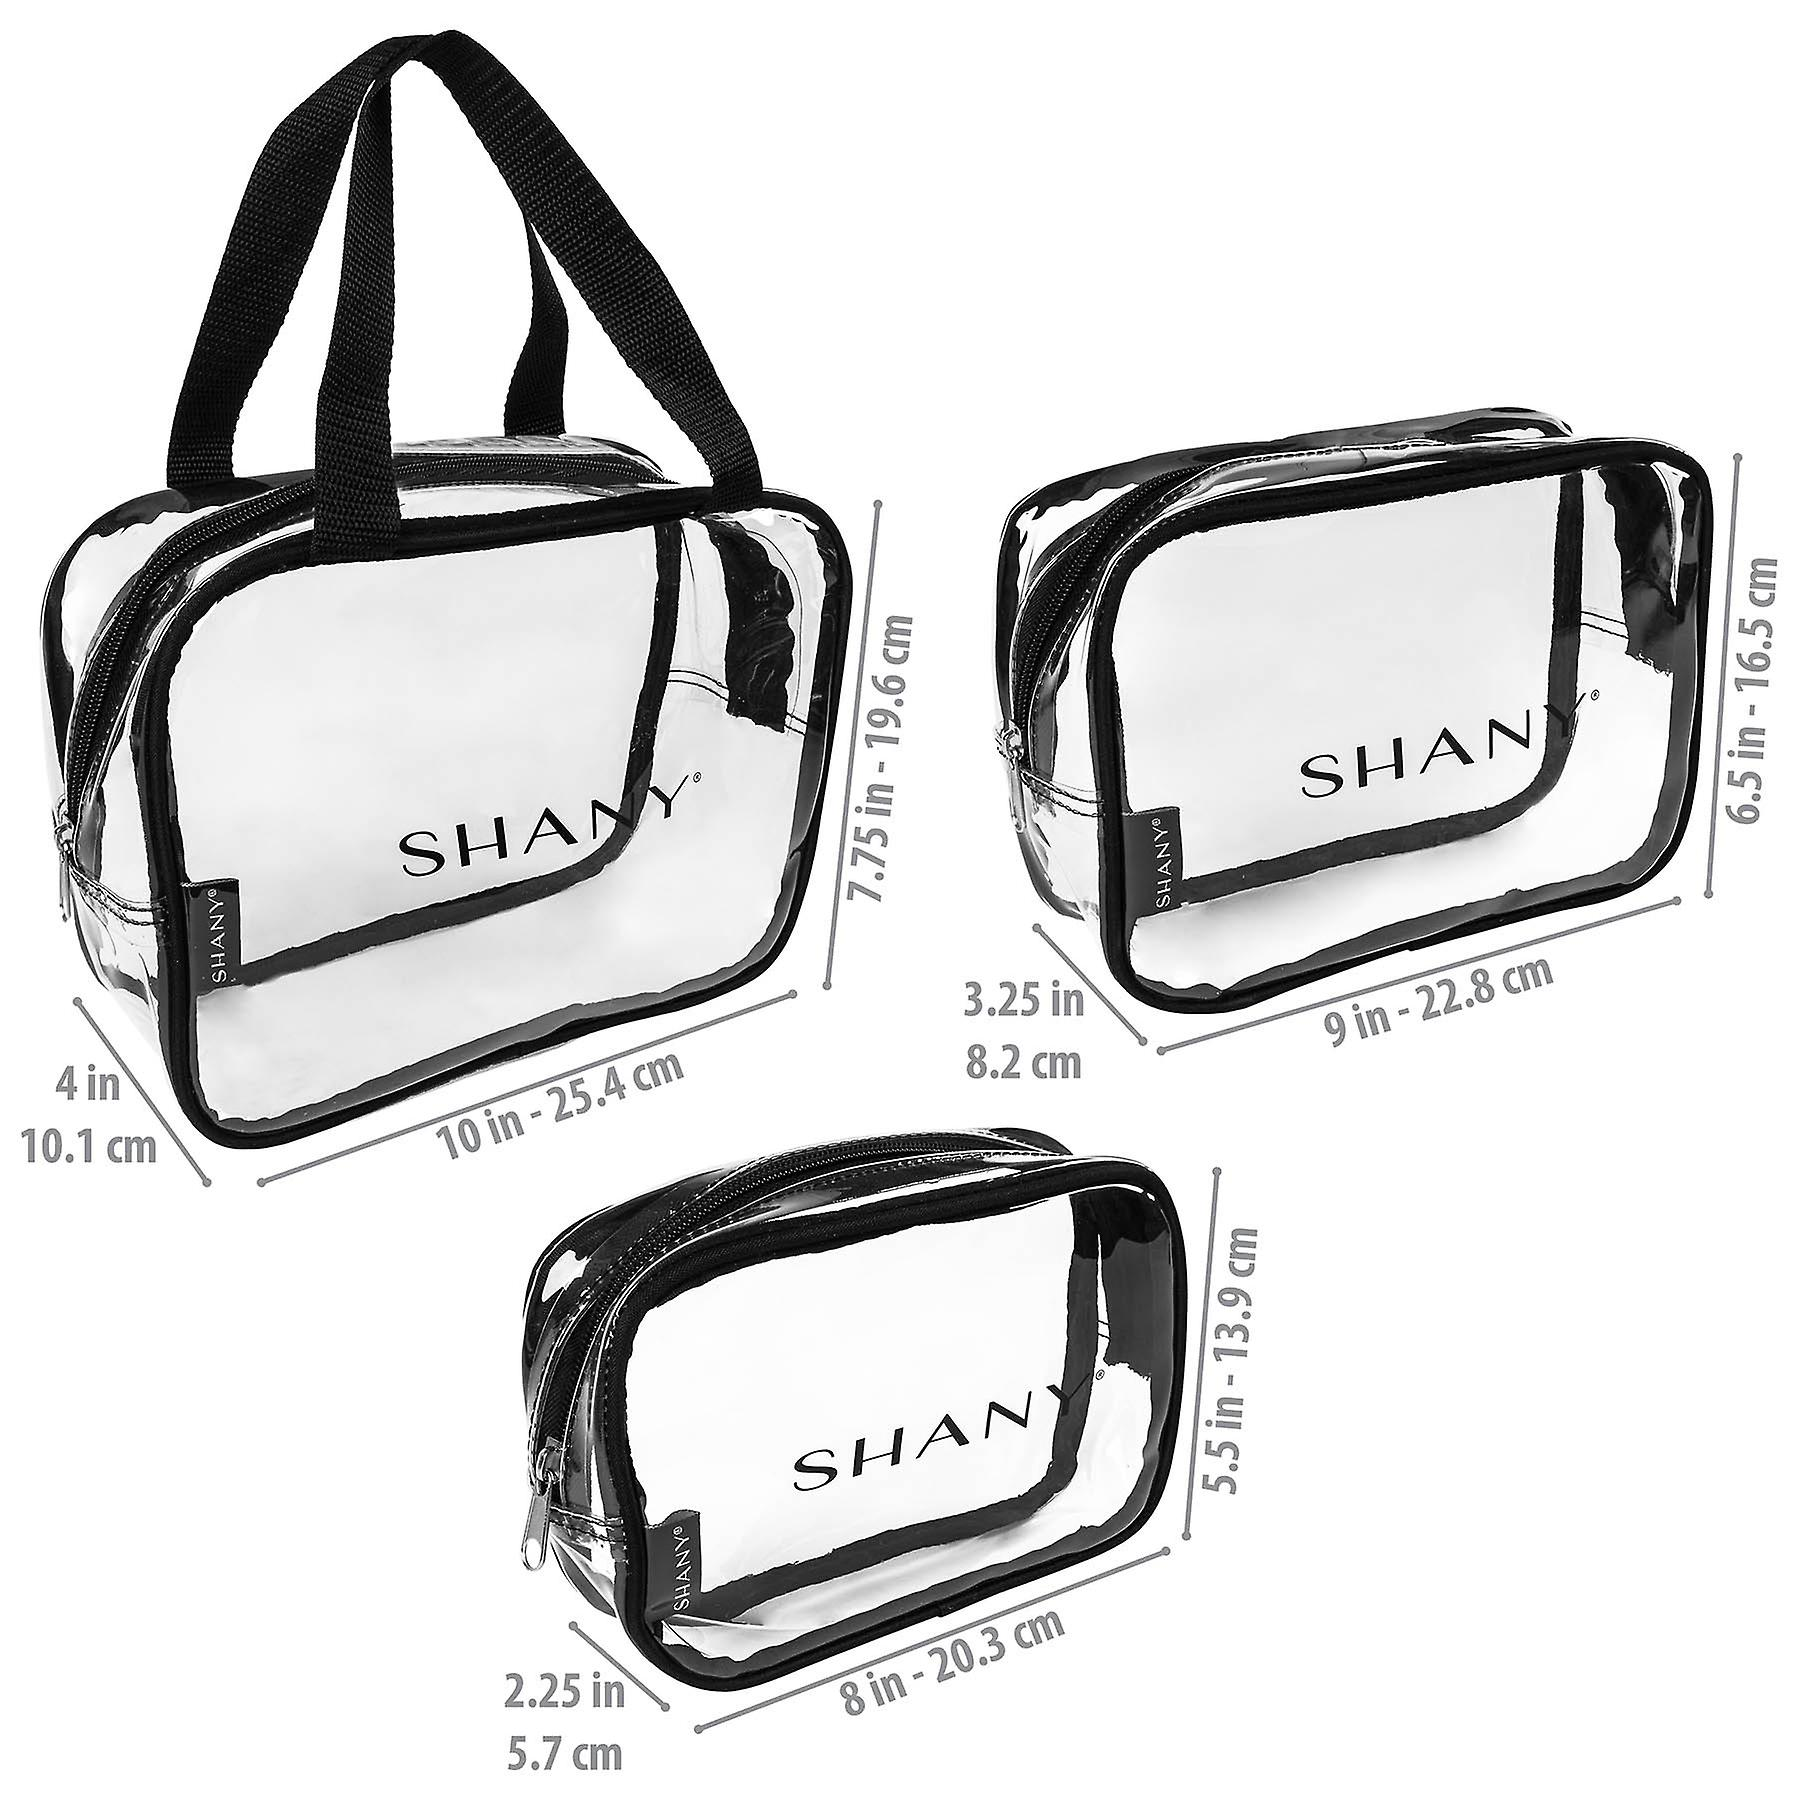 SHANY Clear PVC Toiletry and Makeup Carry-On Bag Set - Assorted Sizes Travel Cosmetic Organizers with Black Trim - 3PC Set